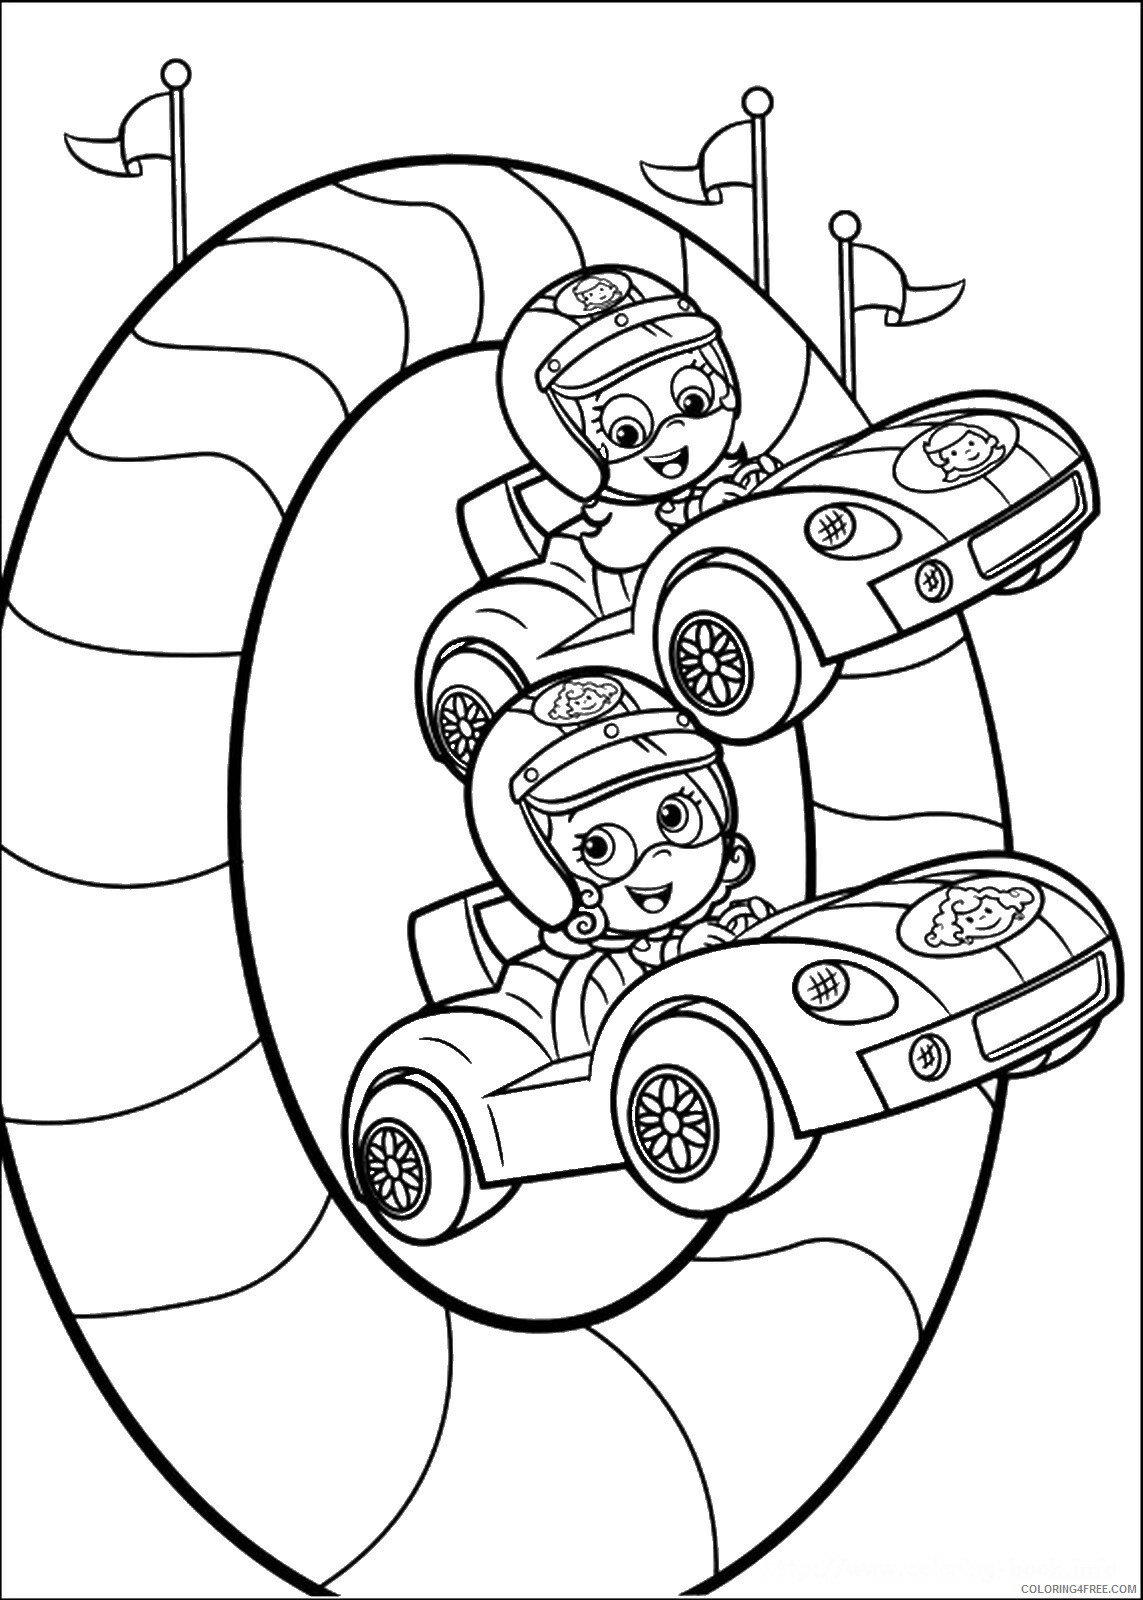 Bubble Guppies Coloring Pages TV Film Printable Bubble Guppies Printable 2020 01711 Coloring4free